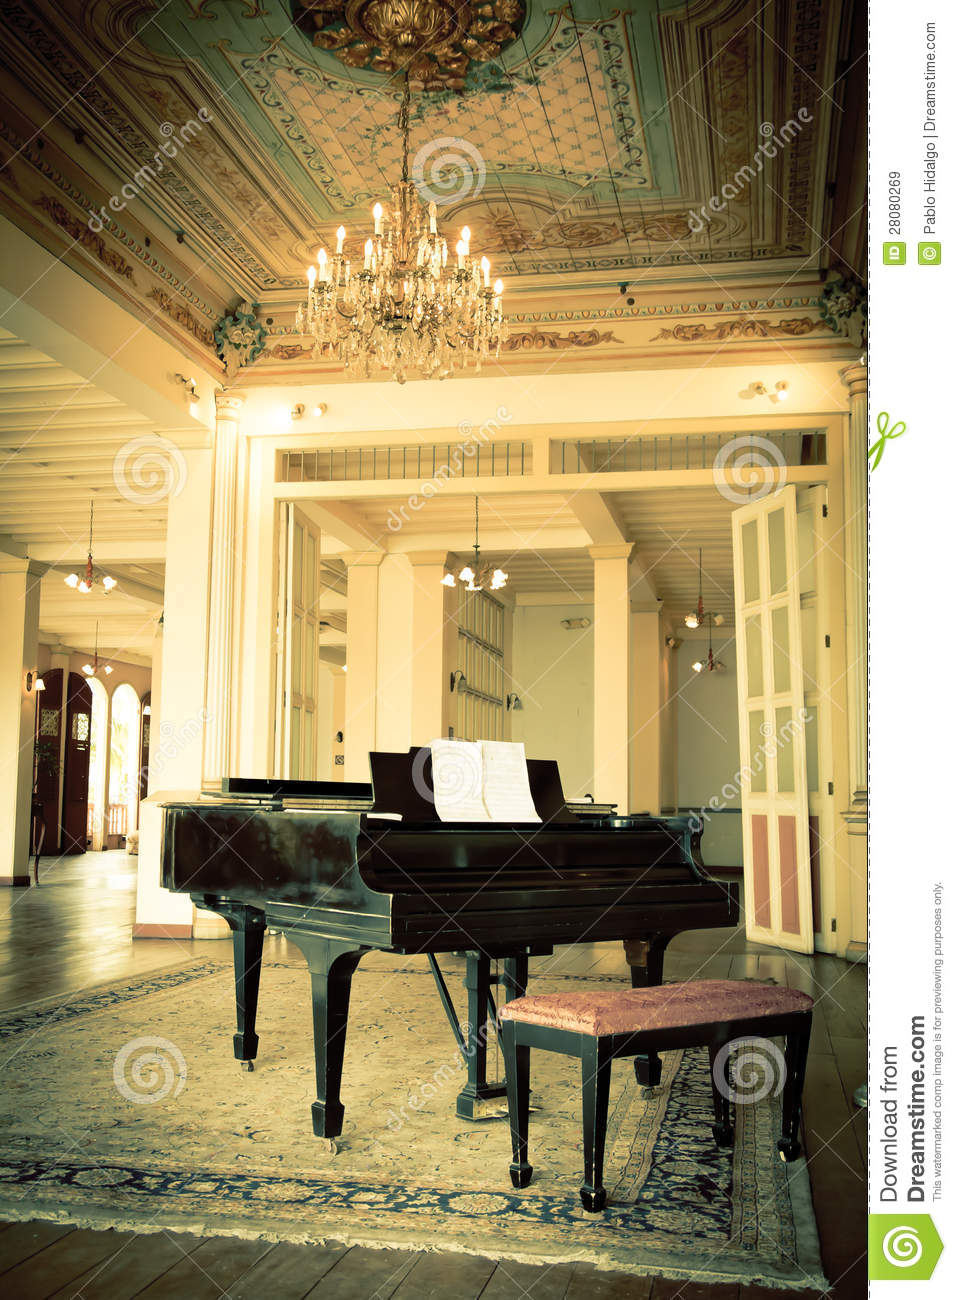 Grand Piano In A Old Vintage Luxury Interior Royalty Free Stock Images  Image 28080269